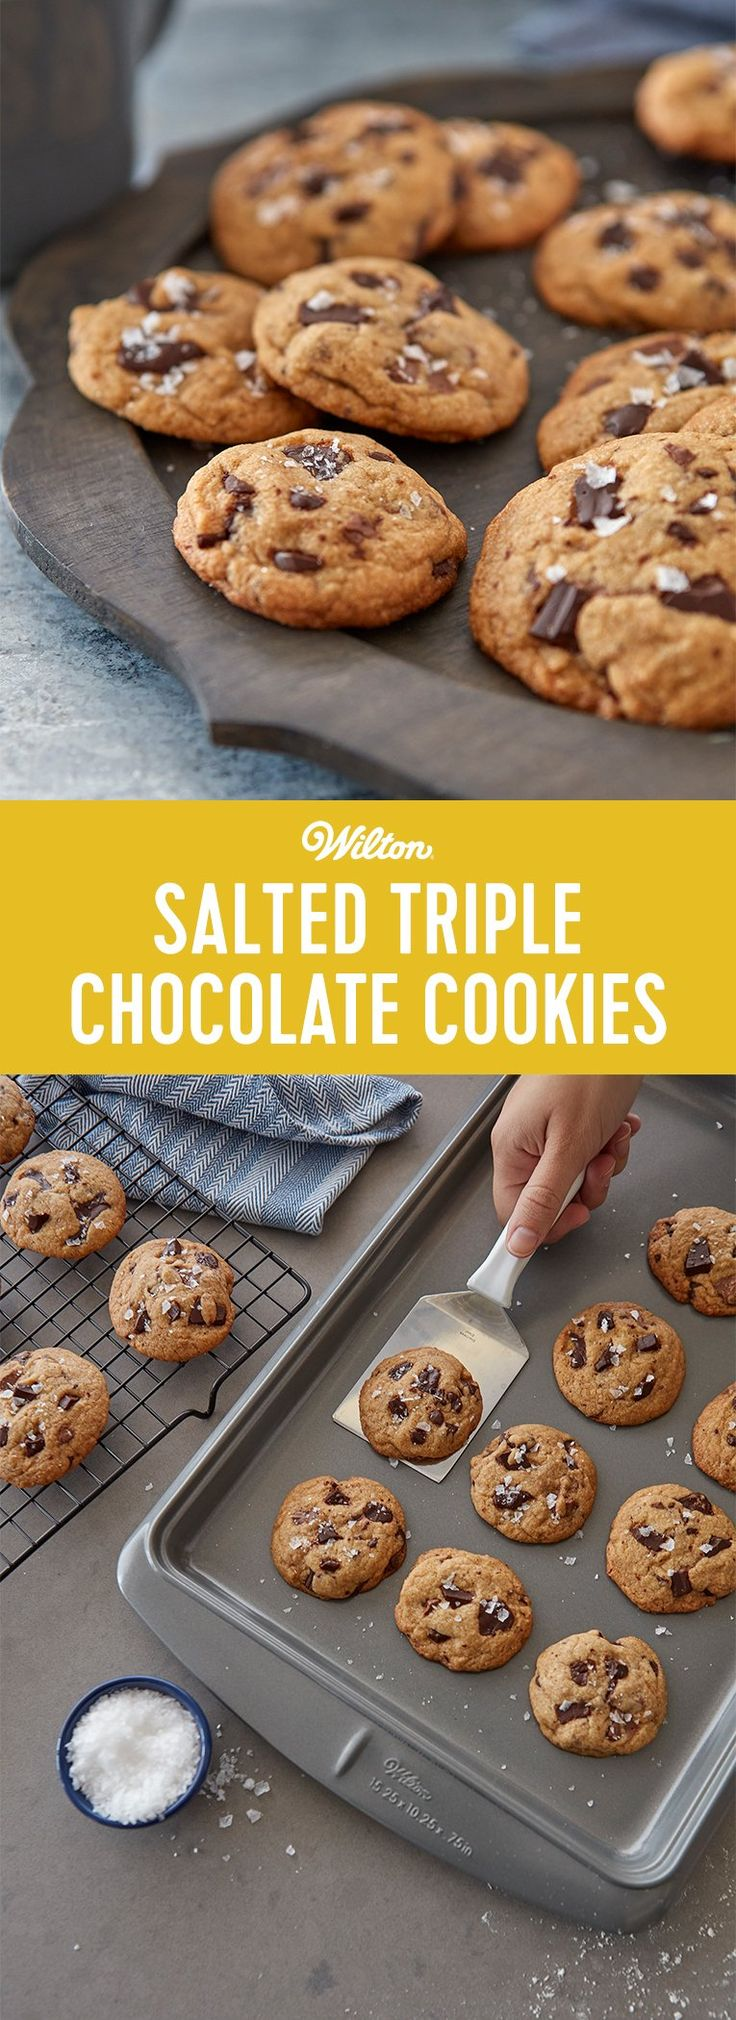 Salted Triple Chocolate Chunk Cookies Recipe - Chocolate lovers rejoice! These crunchy, yummy cookies are chock full of three types of chocolate—dark, semisweet, and milk—and take your chocolate obsession to new heights. A sprinkling of sea salt adds a bit of crunch and enhances the rich chocolaty flavor. Make these to share with friends...or not! This is a great recipe for beginner bakers. #chocolatechipcookies